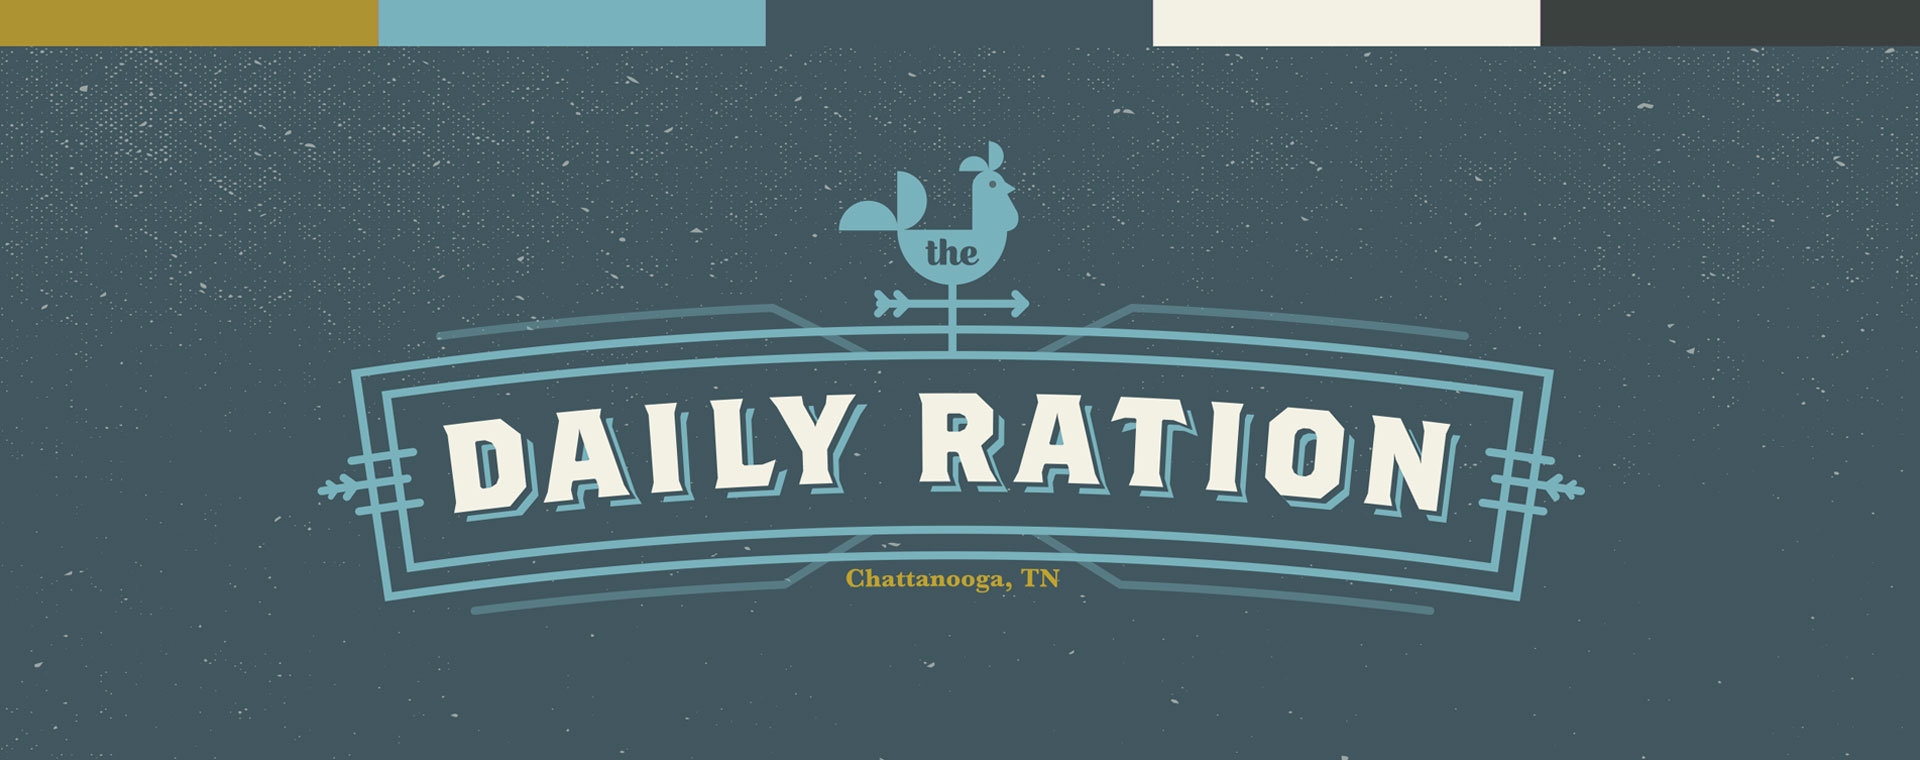 Tiny Giant - The Daily Ration - Logo / Color Palette